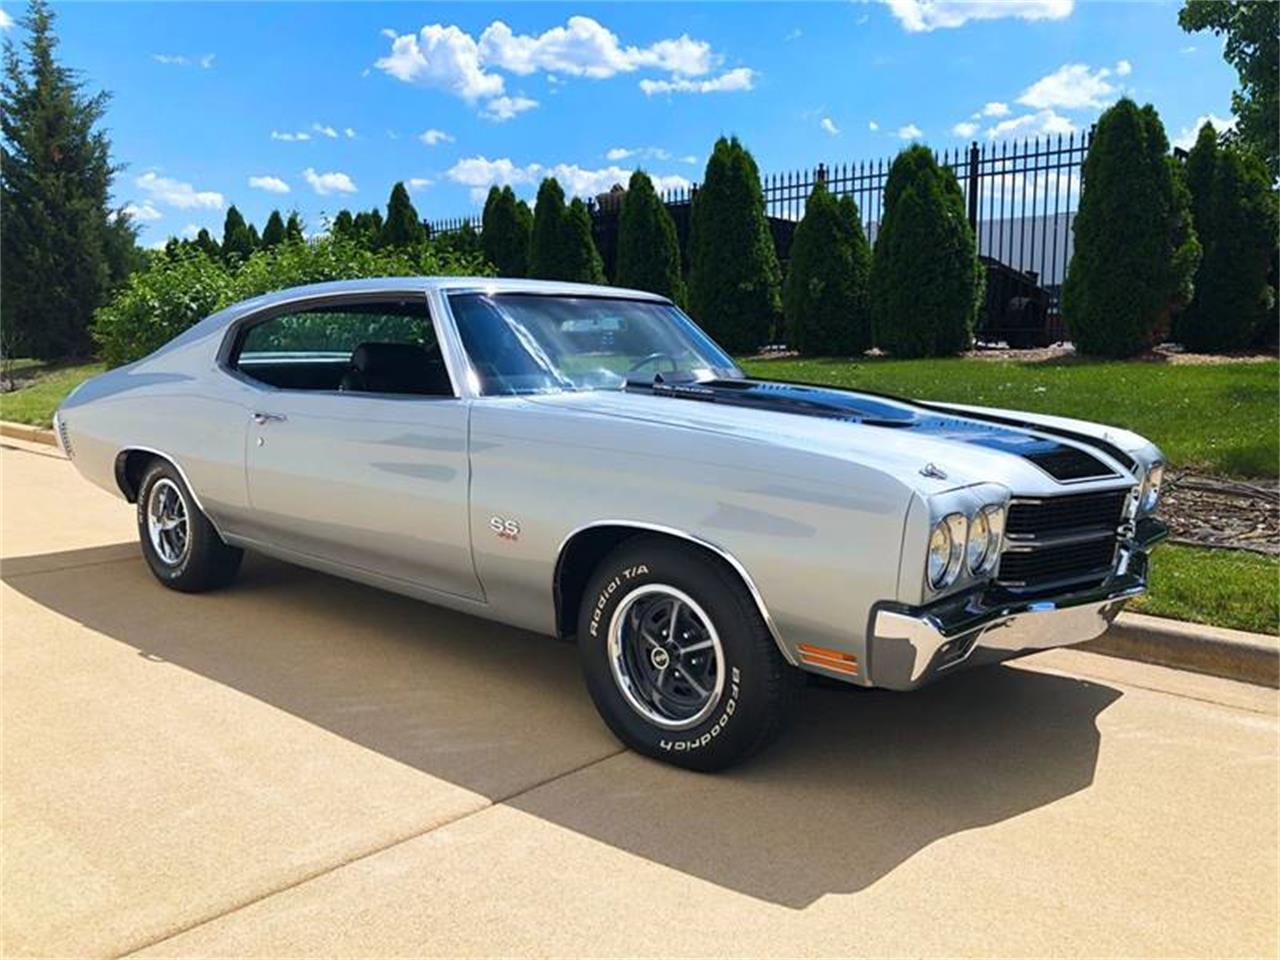 Large Picture of Classic '70 Chevelle SS located in Illinois - $144,990.00 Offered by Corvette Mike Midwest - QHCD